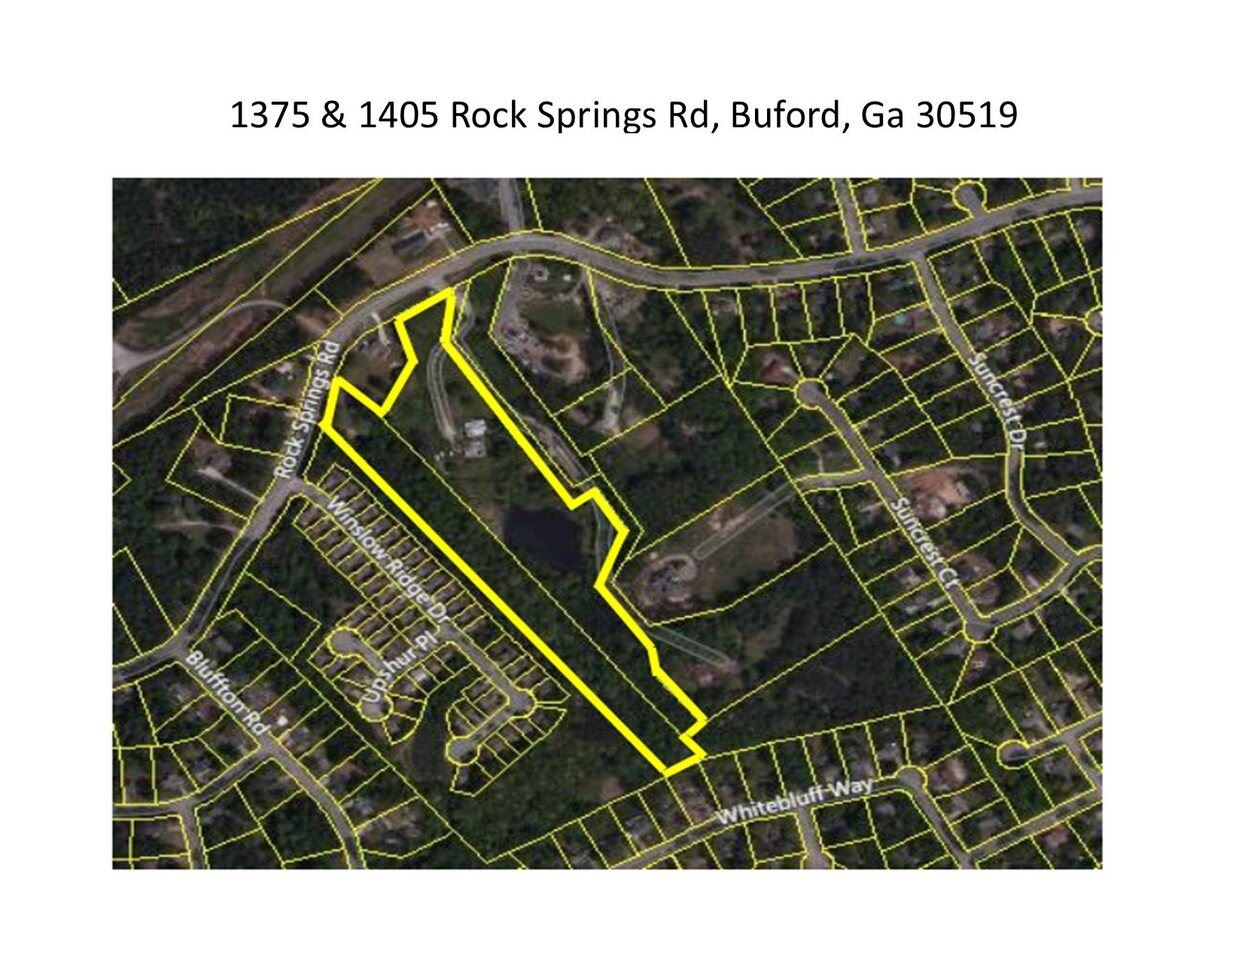 1375 Rock Springs Rd, Buford, GA 30519 - MLS#: 8856279